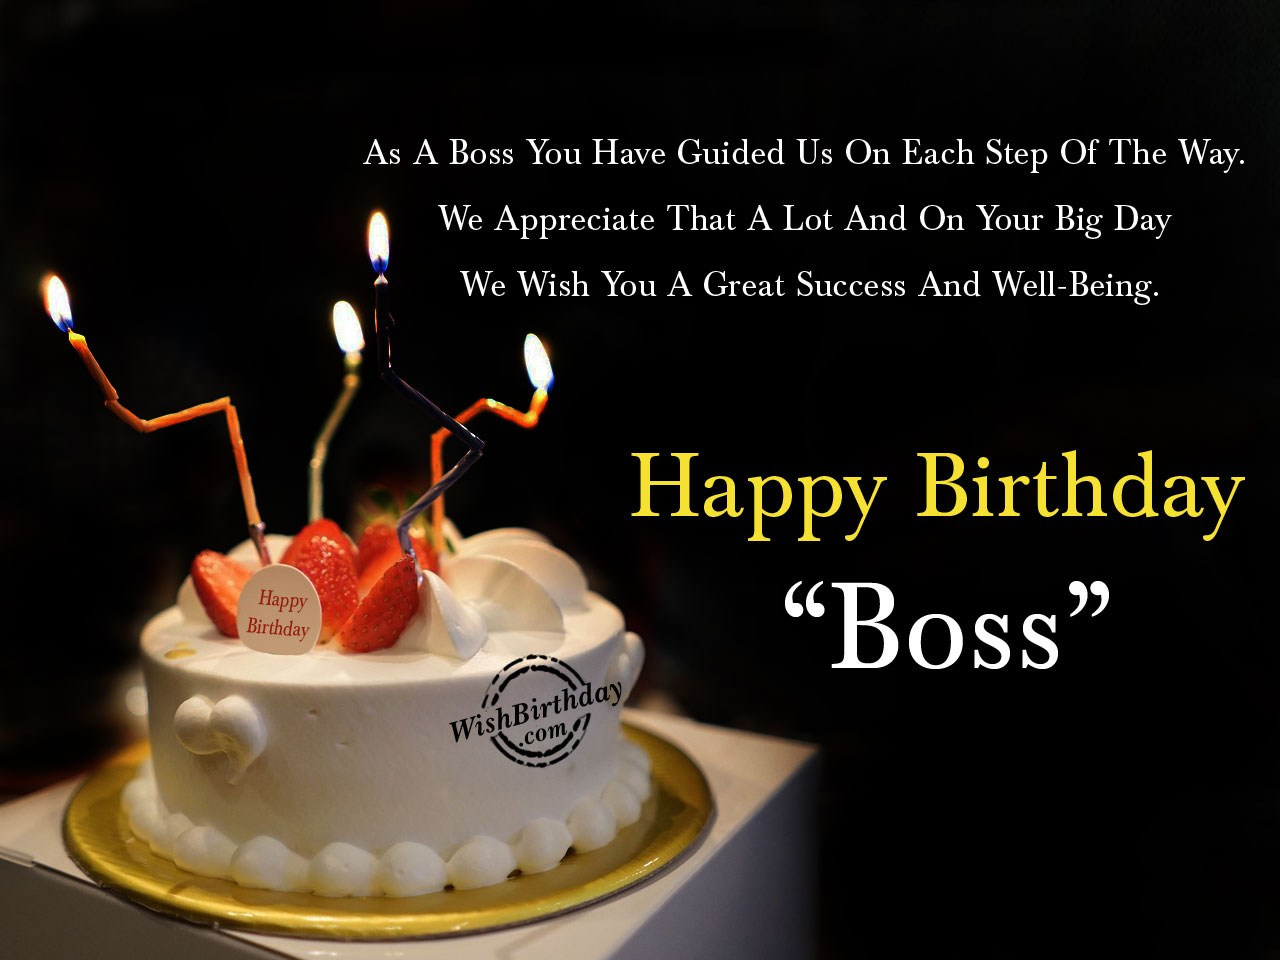 Best ideas about Birthday Wishes For Your Boss . Save or Pin Birthday Wishes For Boss Birthday Now.